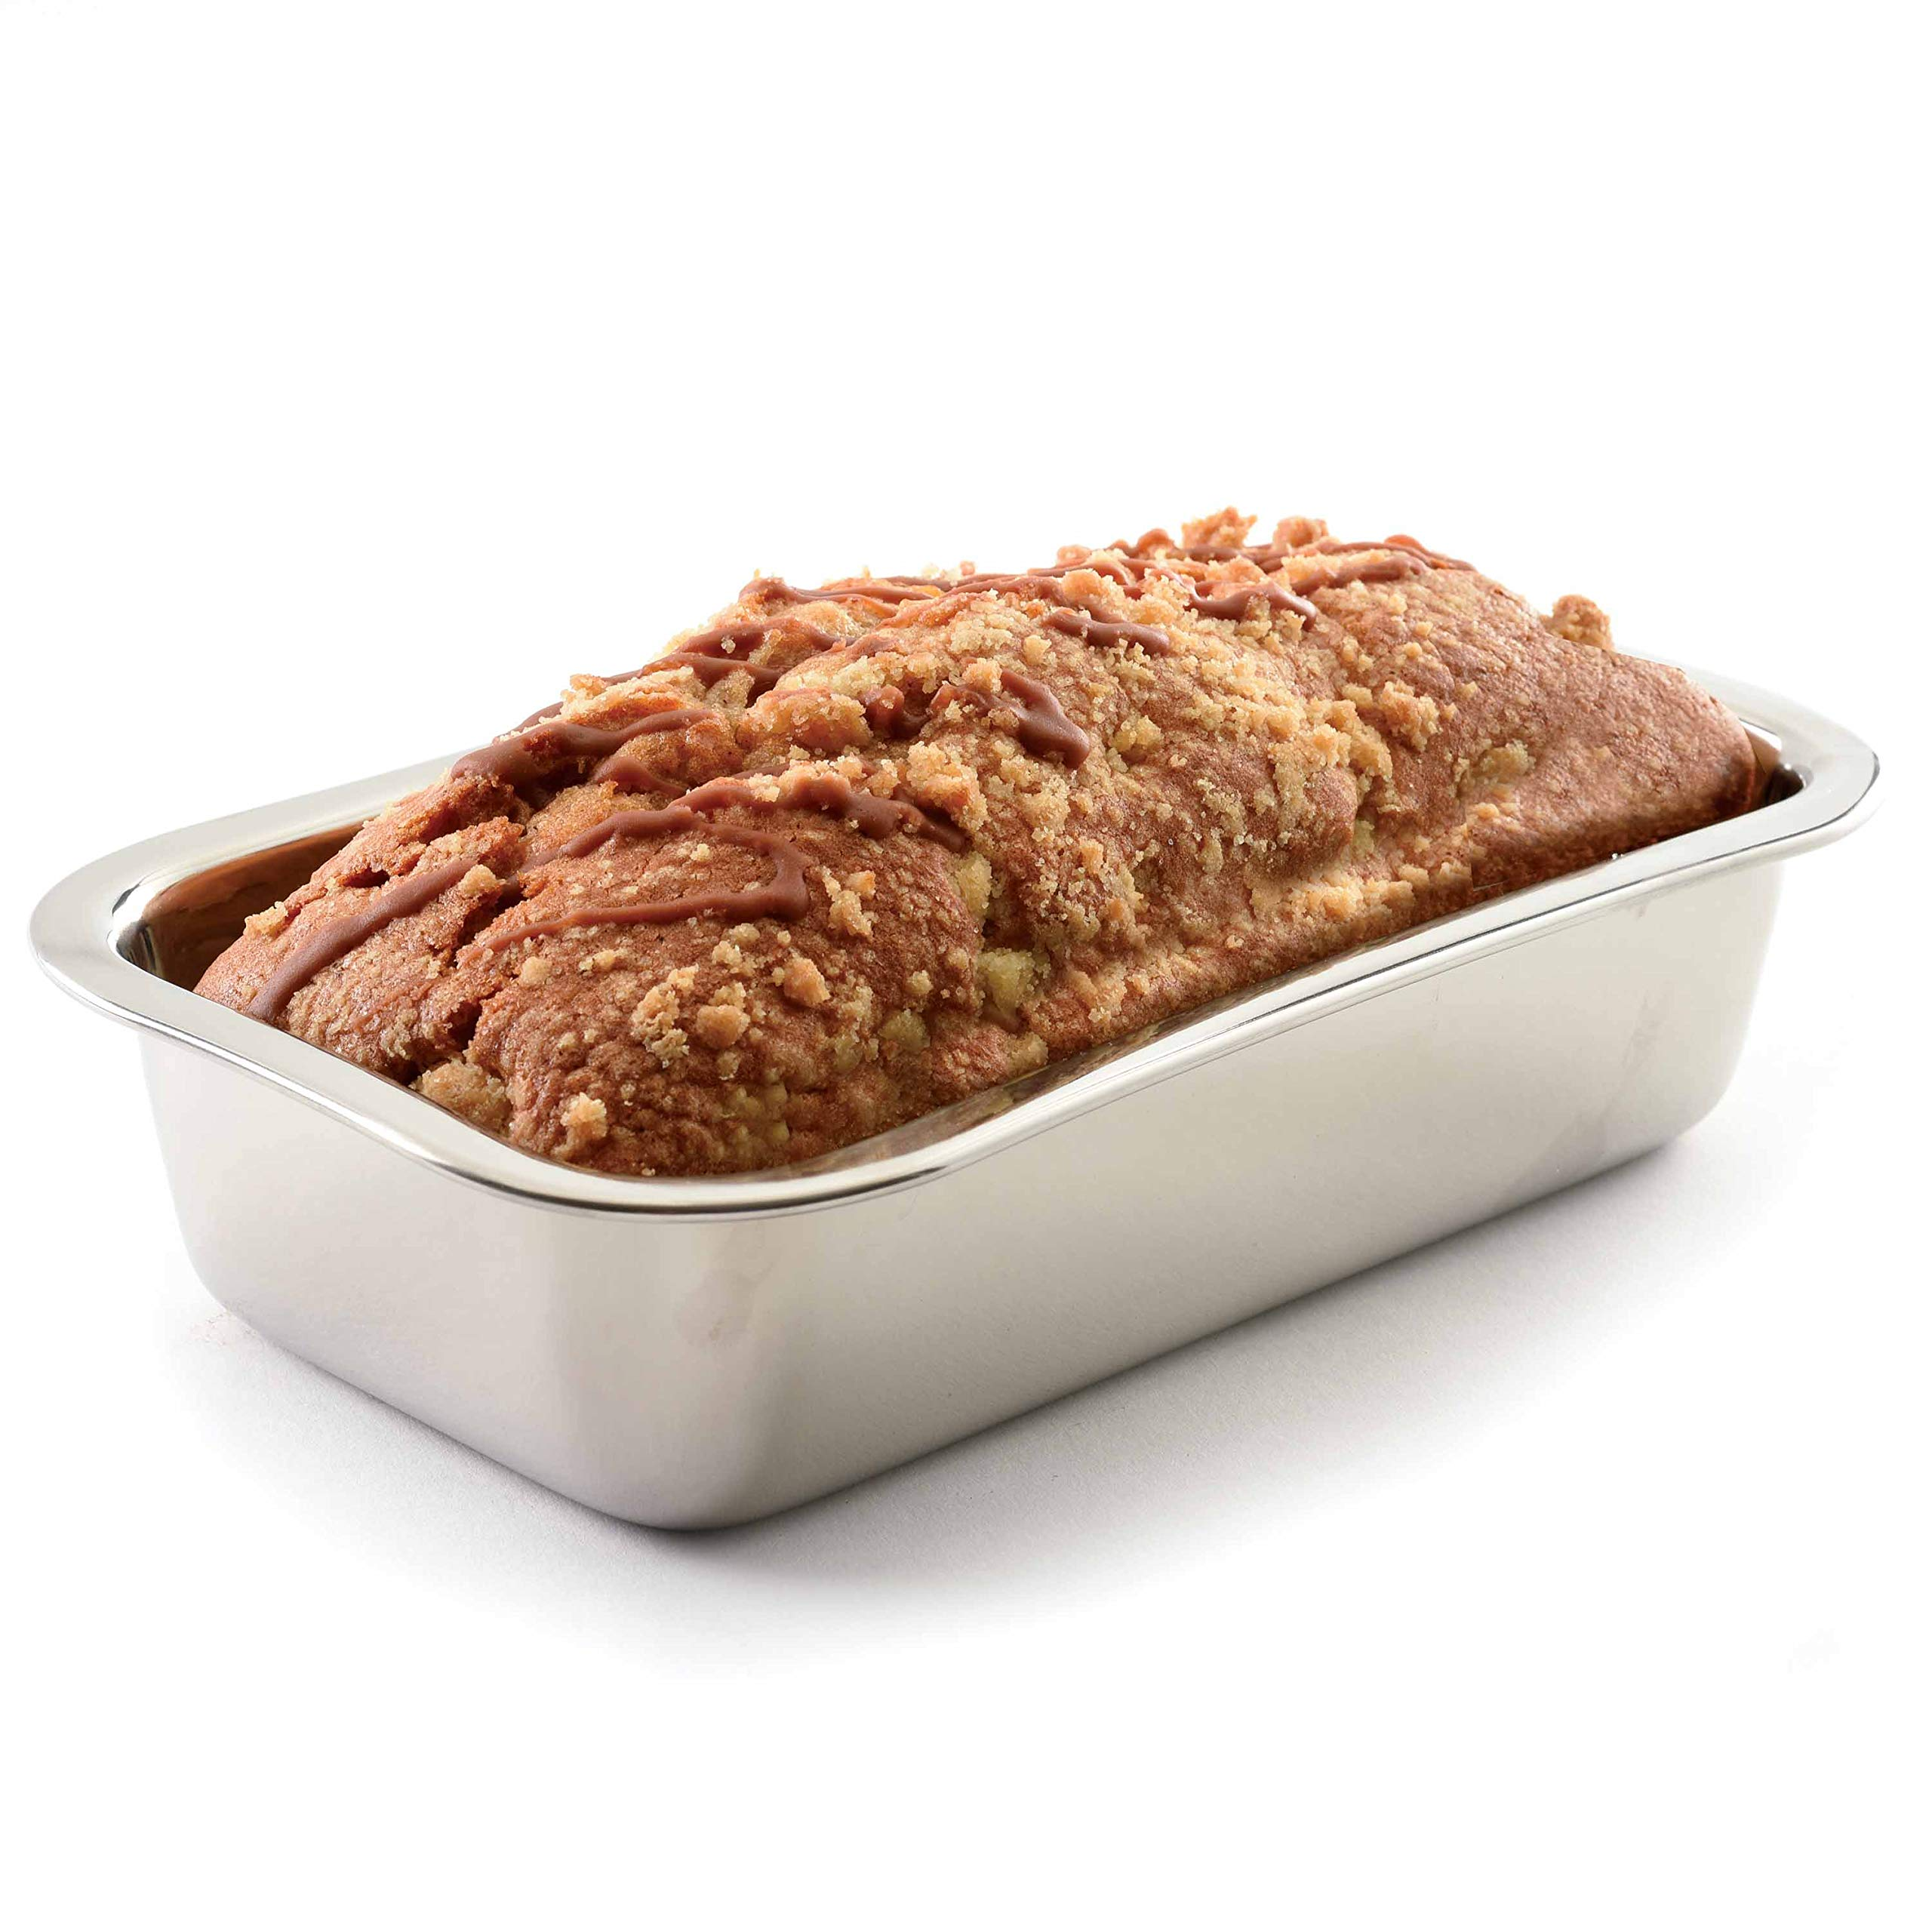 Norpro 3849 Stainless Steel Loaf Pan by Norpro